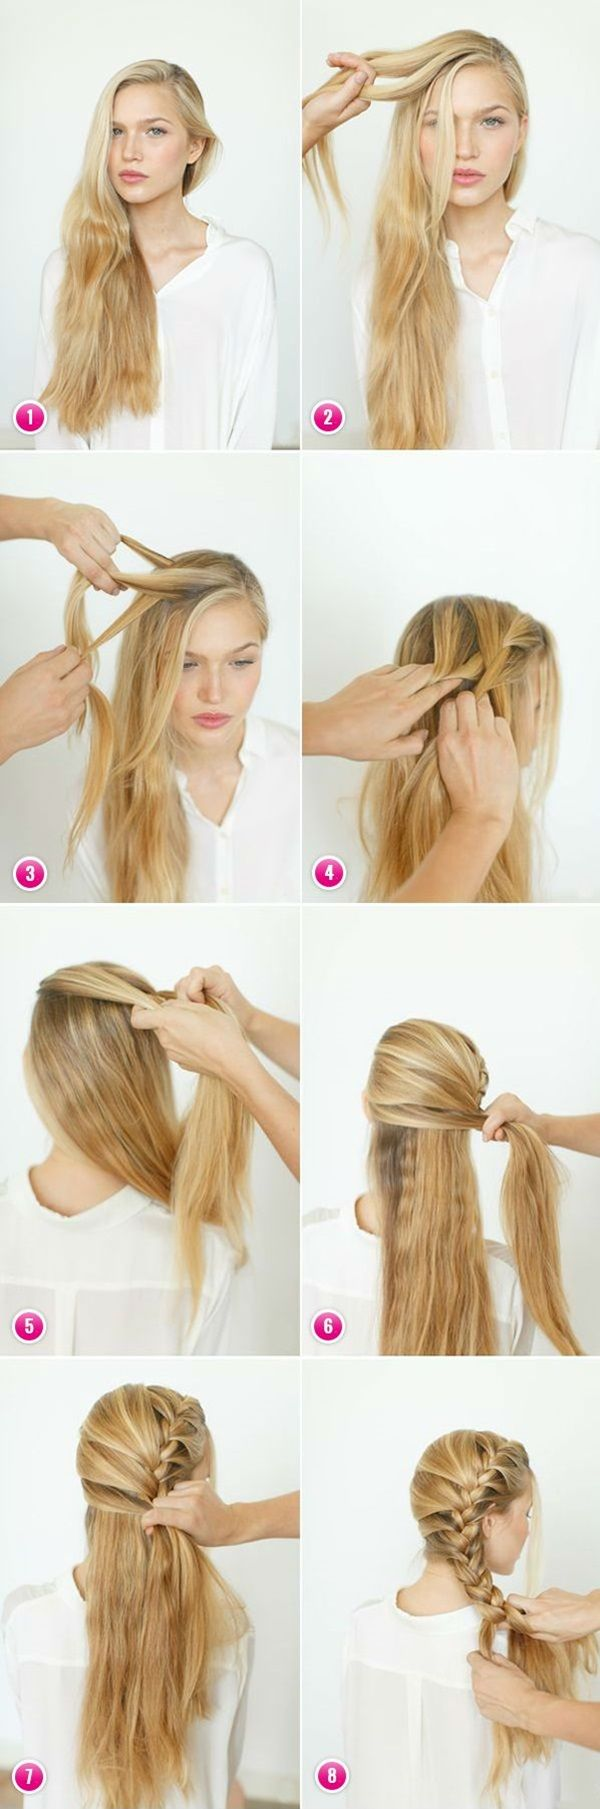 Best 25+ Fast hairstyles ideas only on Pinterest  Fast